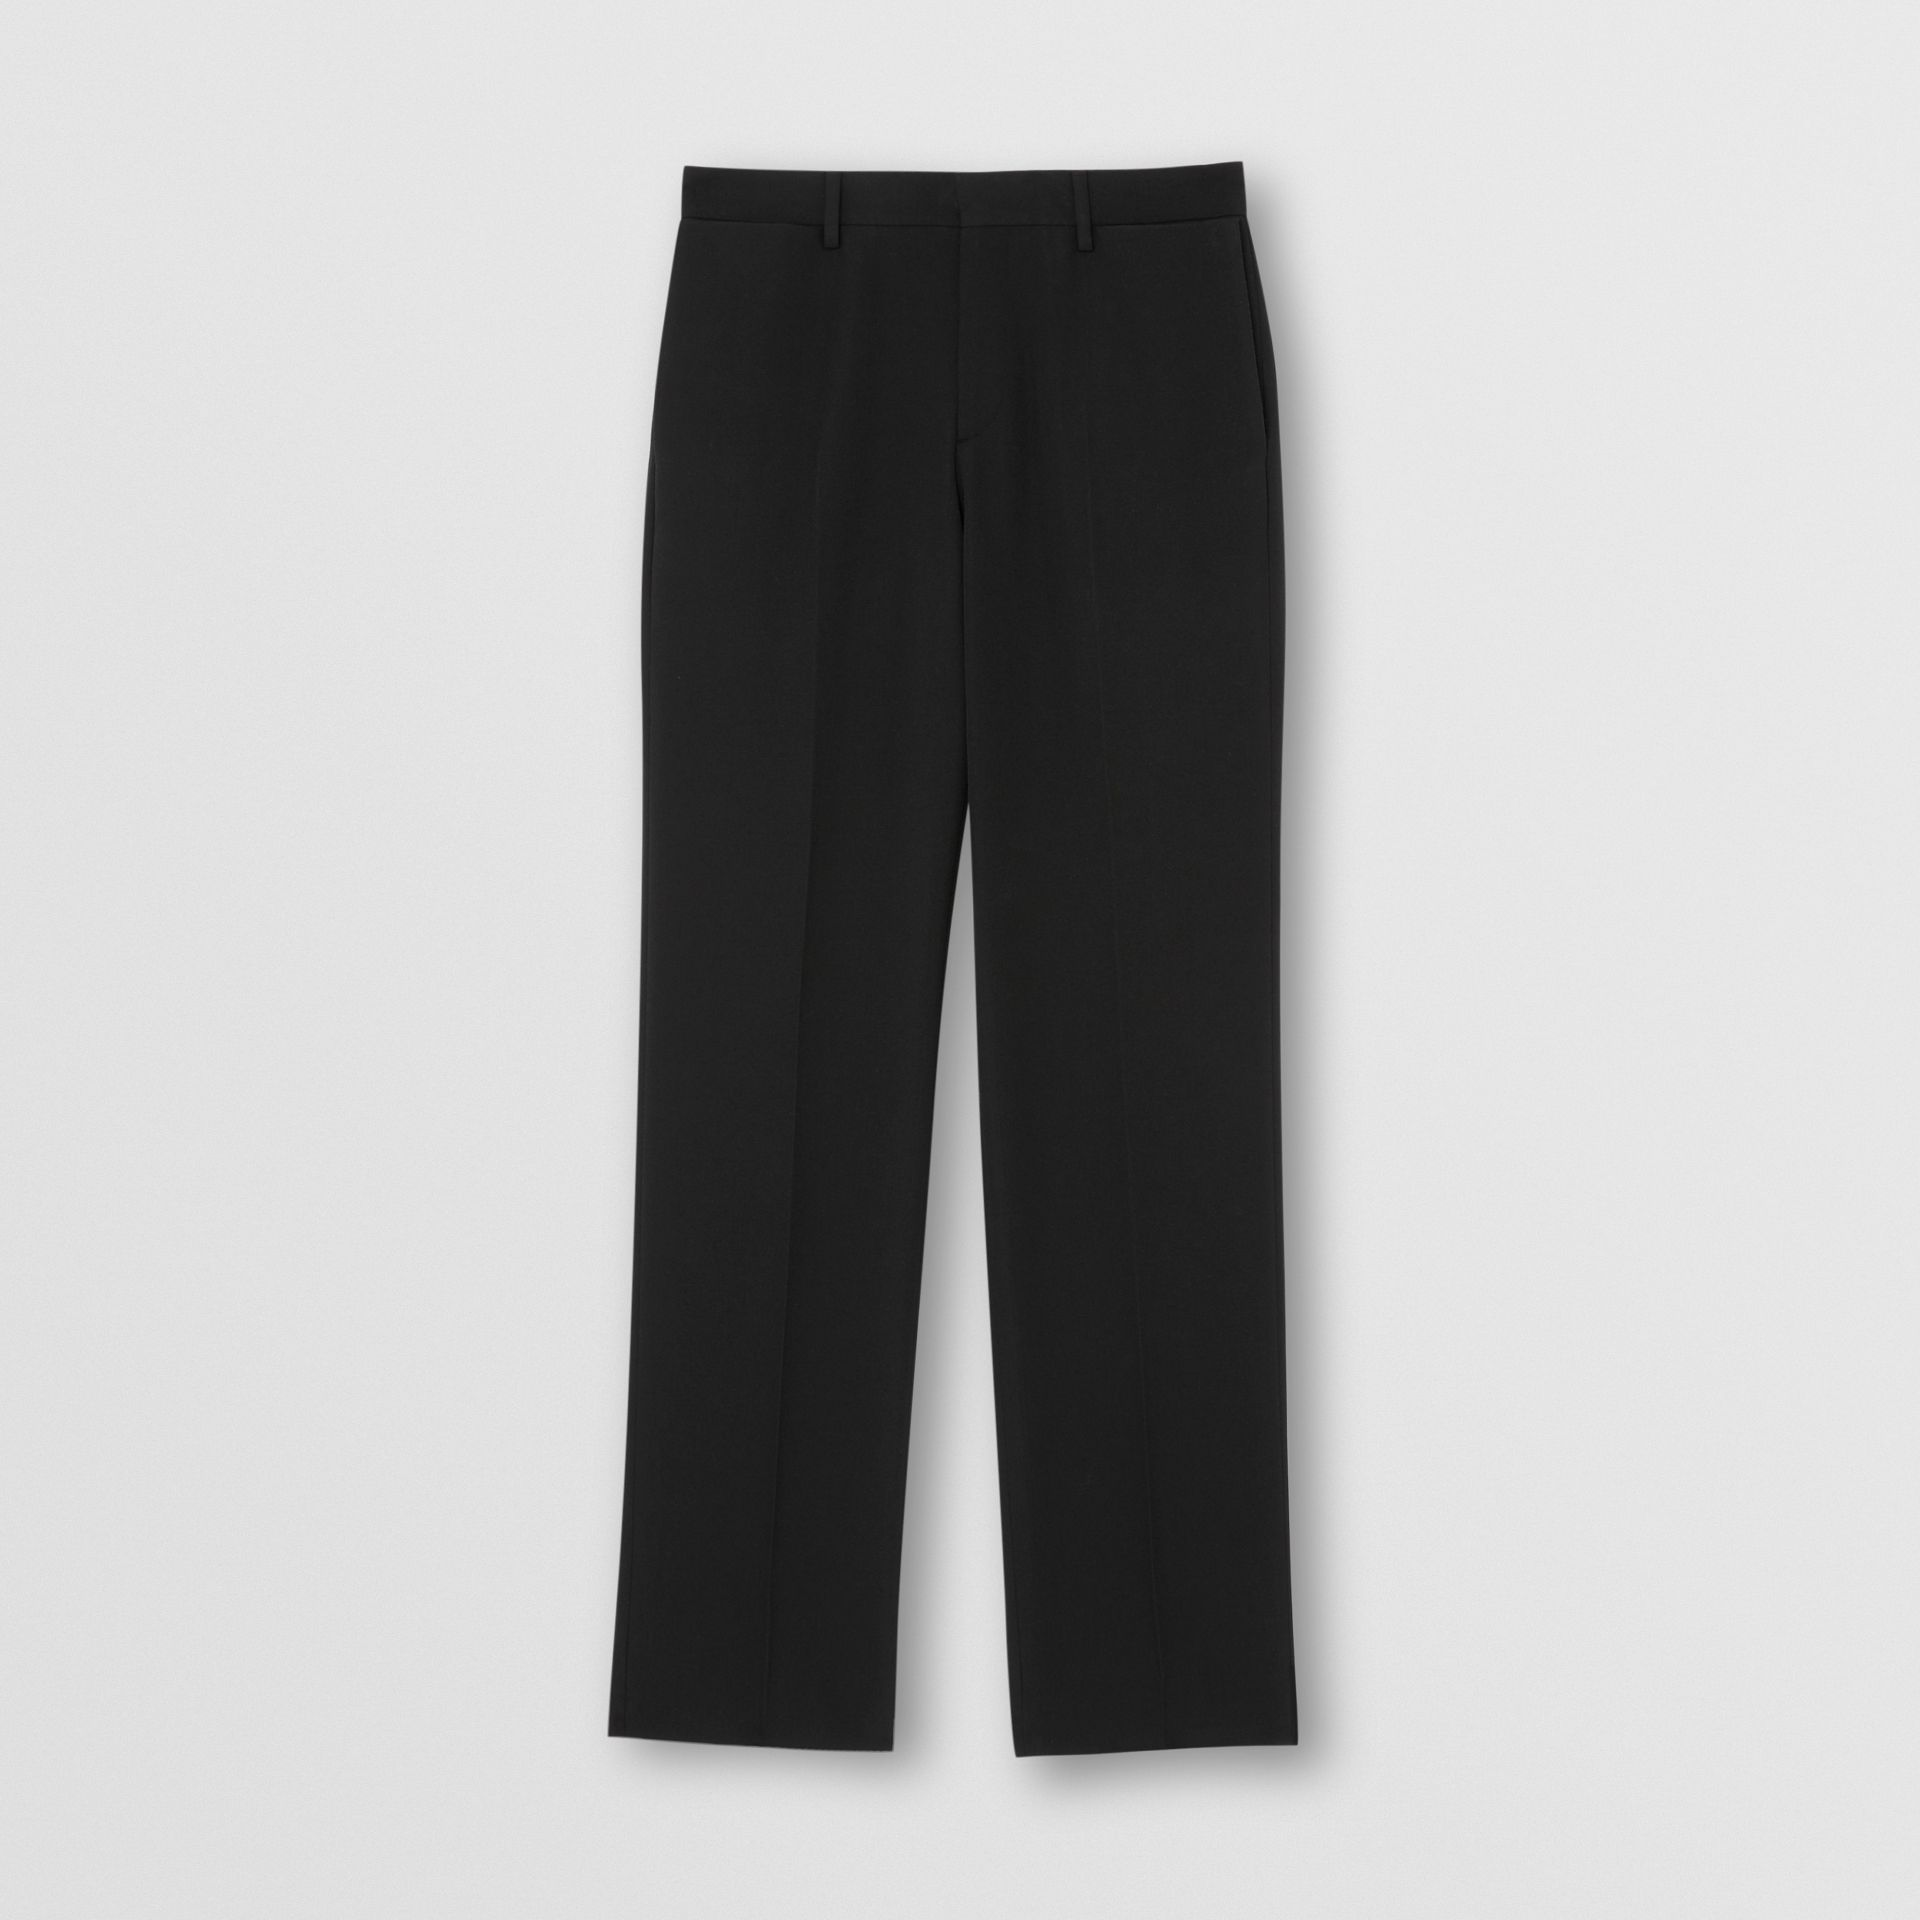 English Fit Pocket Detail Wool Tailored Trousers in Black | Burberry Australia - gallery image 3